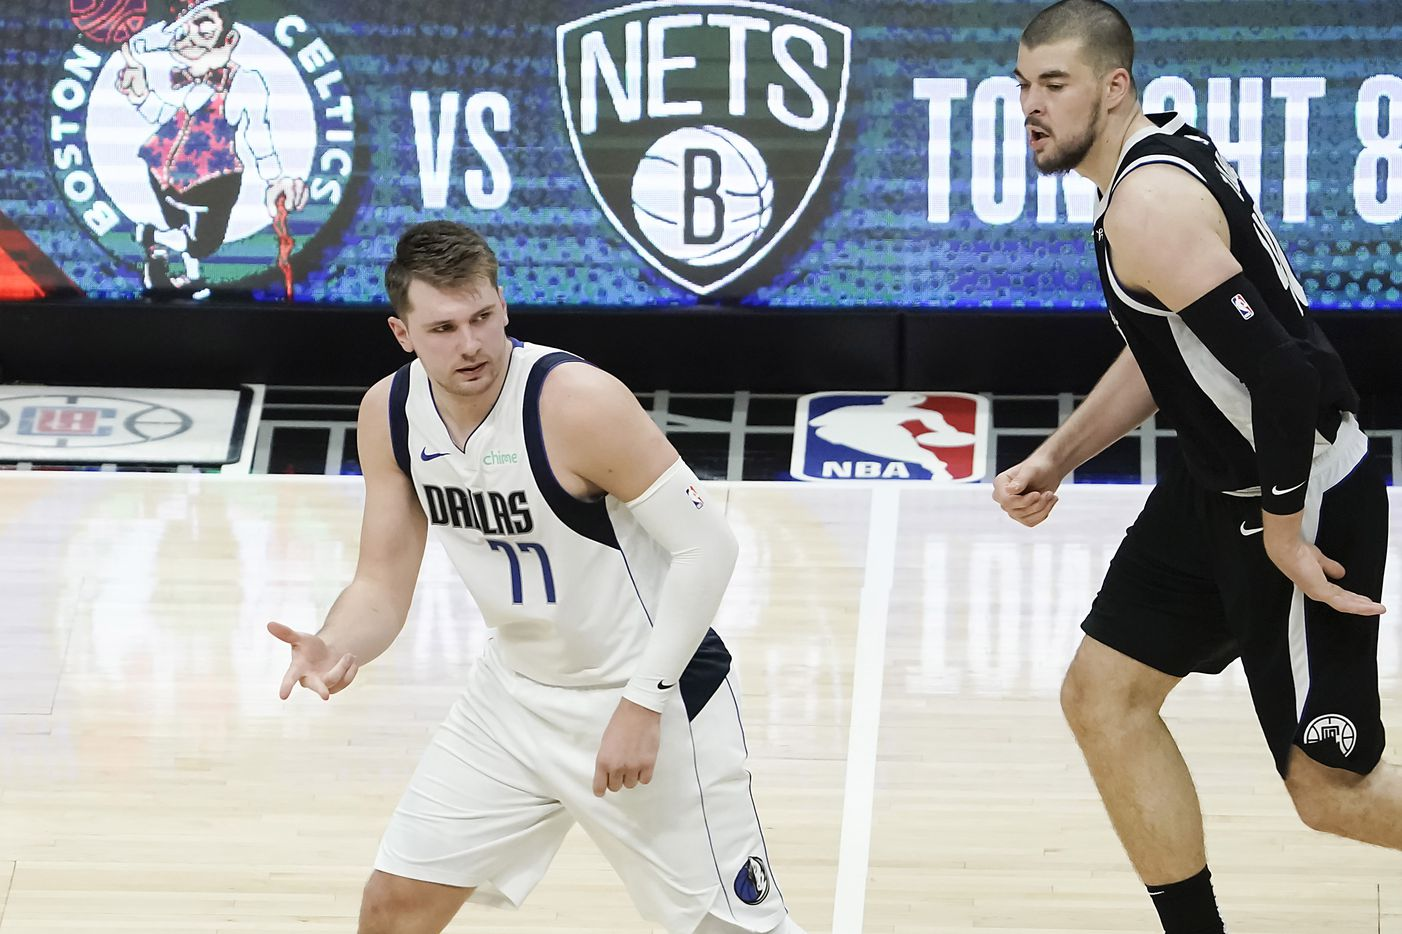 Dallas Mavericks guard Luka Doncic reacts after making a 3-pointer as LA Clippers center Ivica Zubac (40) looks away during the first half of an NBA basketball game at Staples Center on Saturday, May 22, 2021, in Los Angeles.